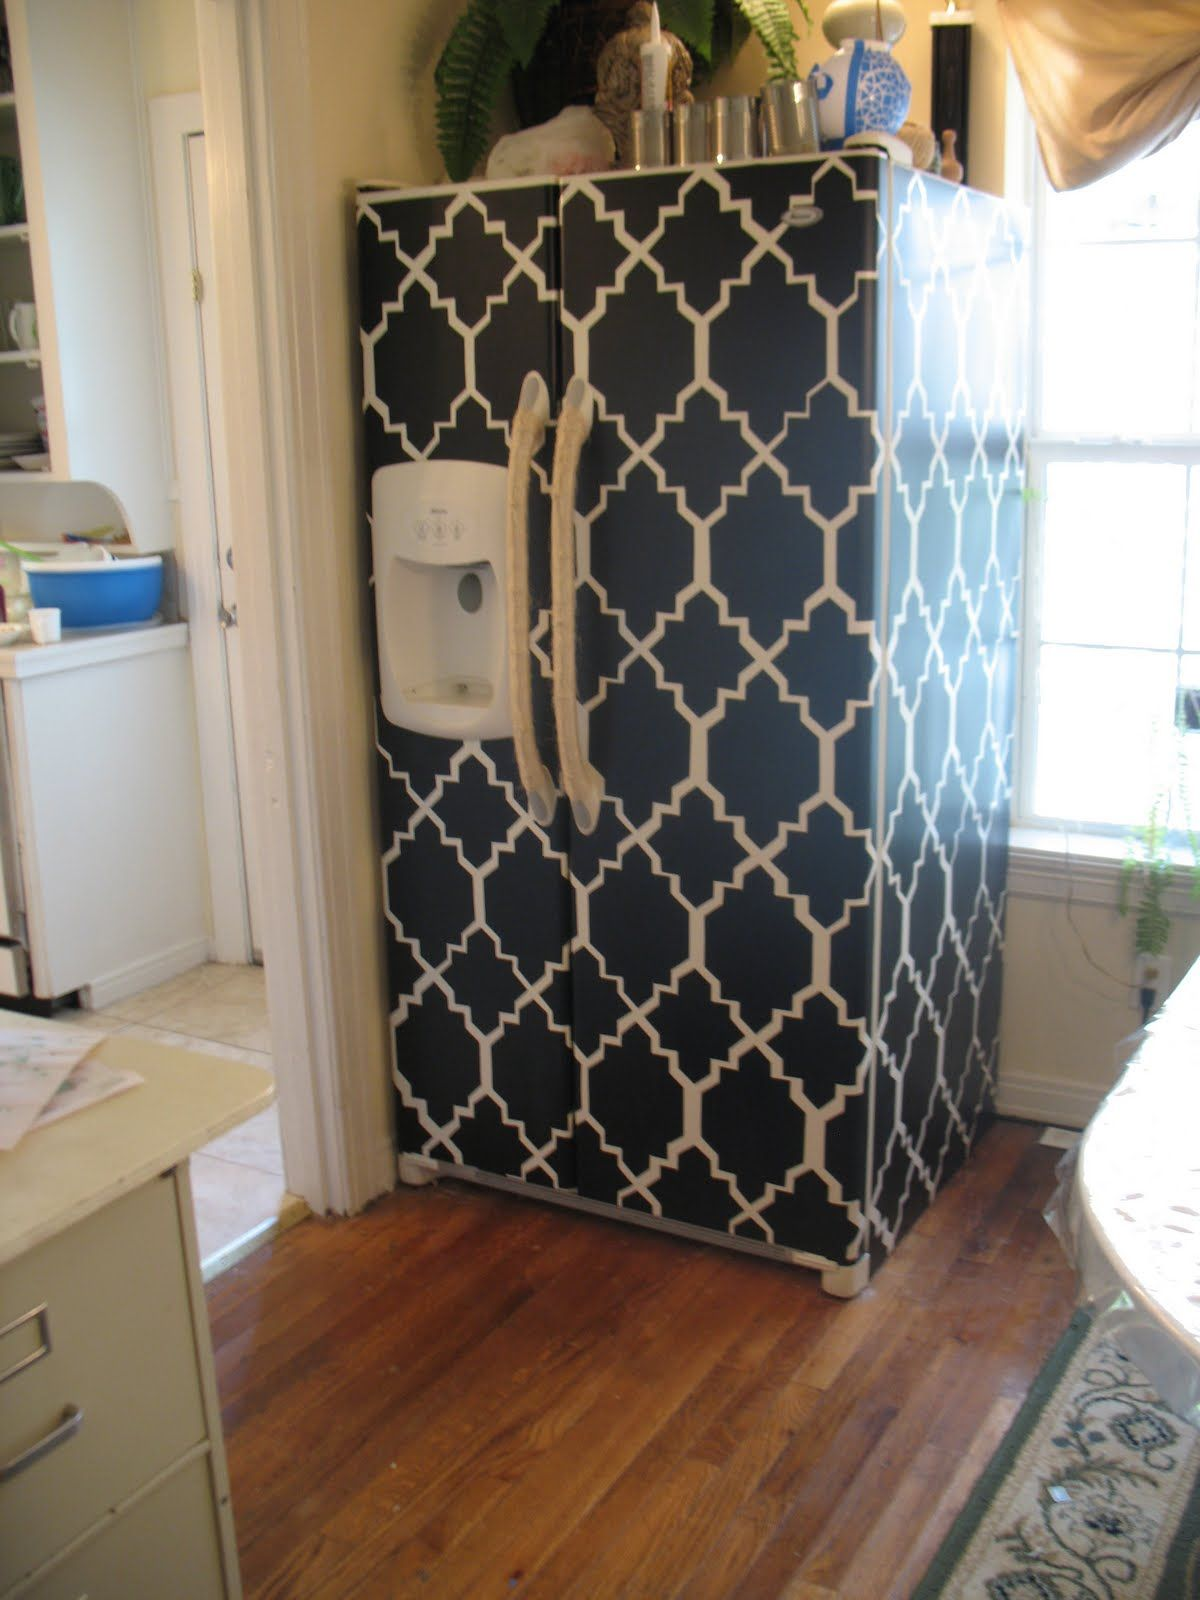 Uncategorized Contact Paper That Looks Like Wood ugly old fridge cover it a cheap way to remodel using contact diy refrigerator design paper pattern shoestring pavilion i wonder what this would look like on our fridge